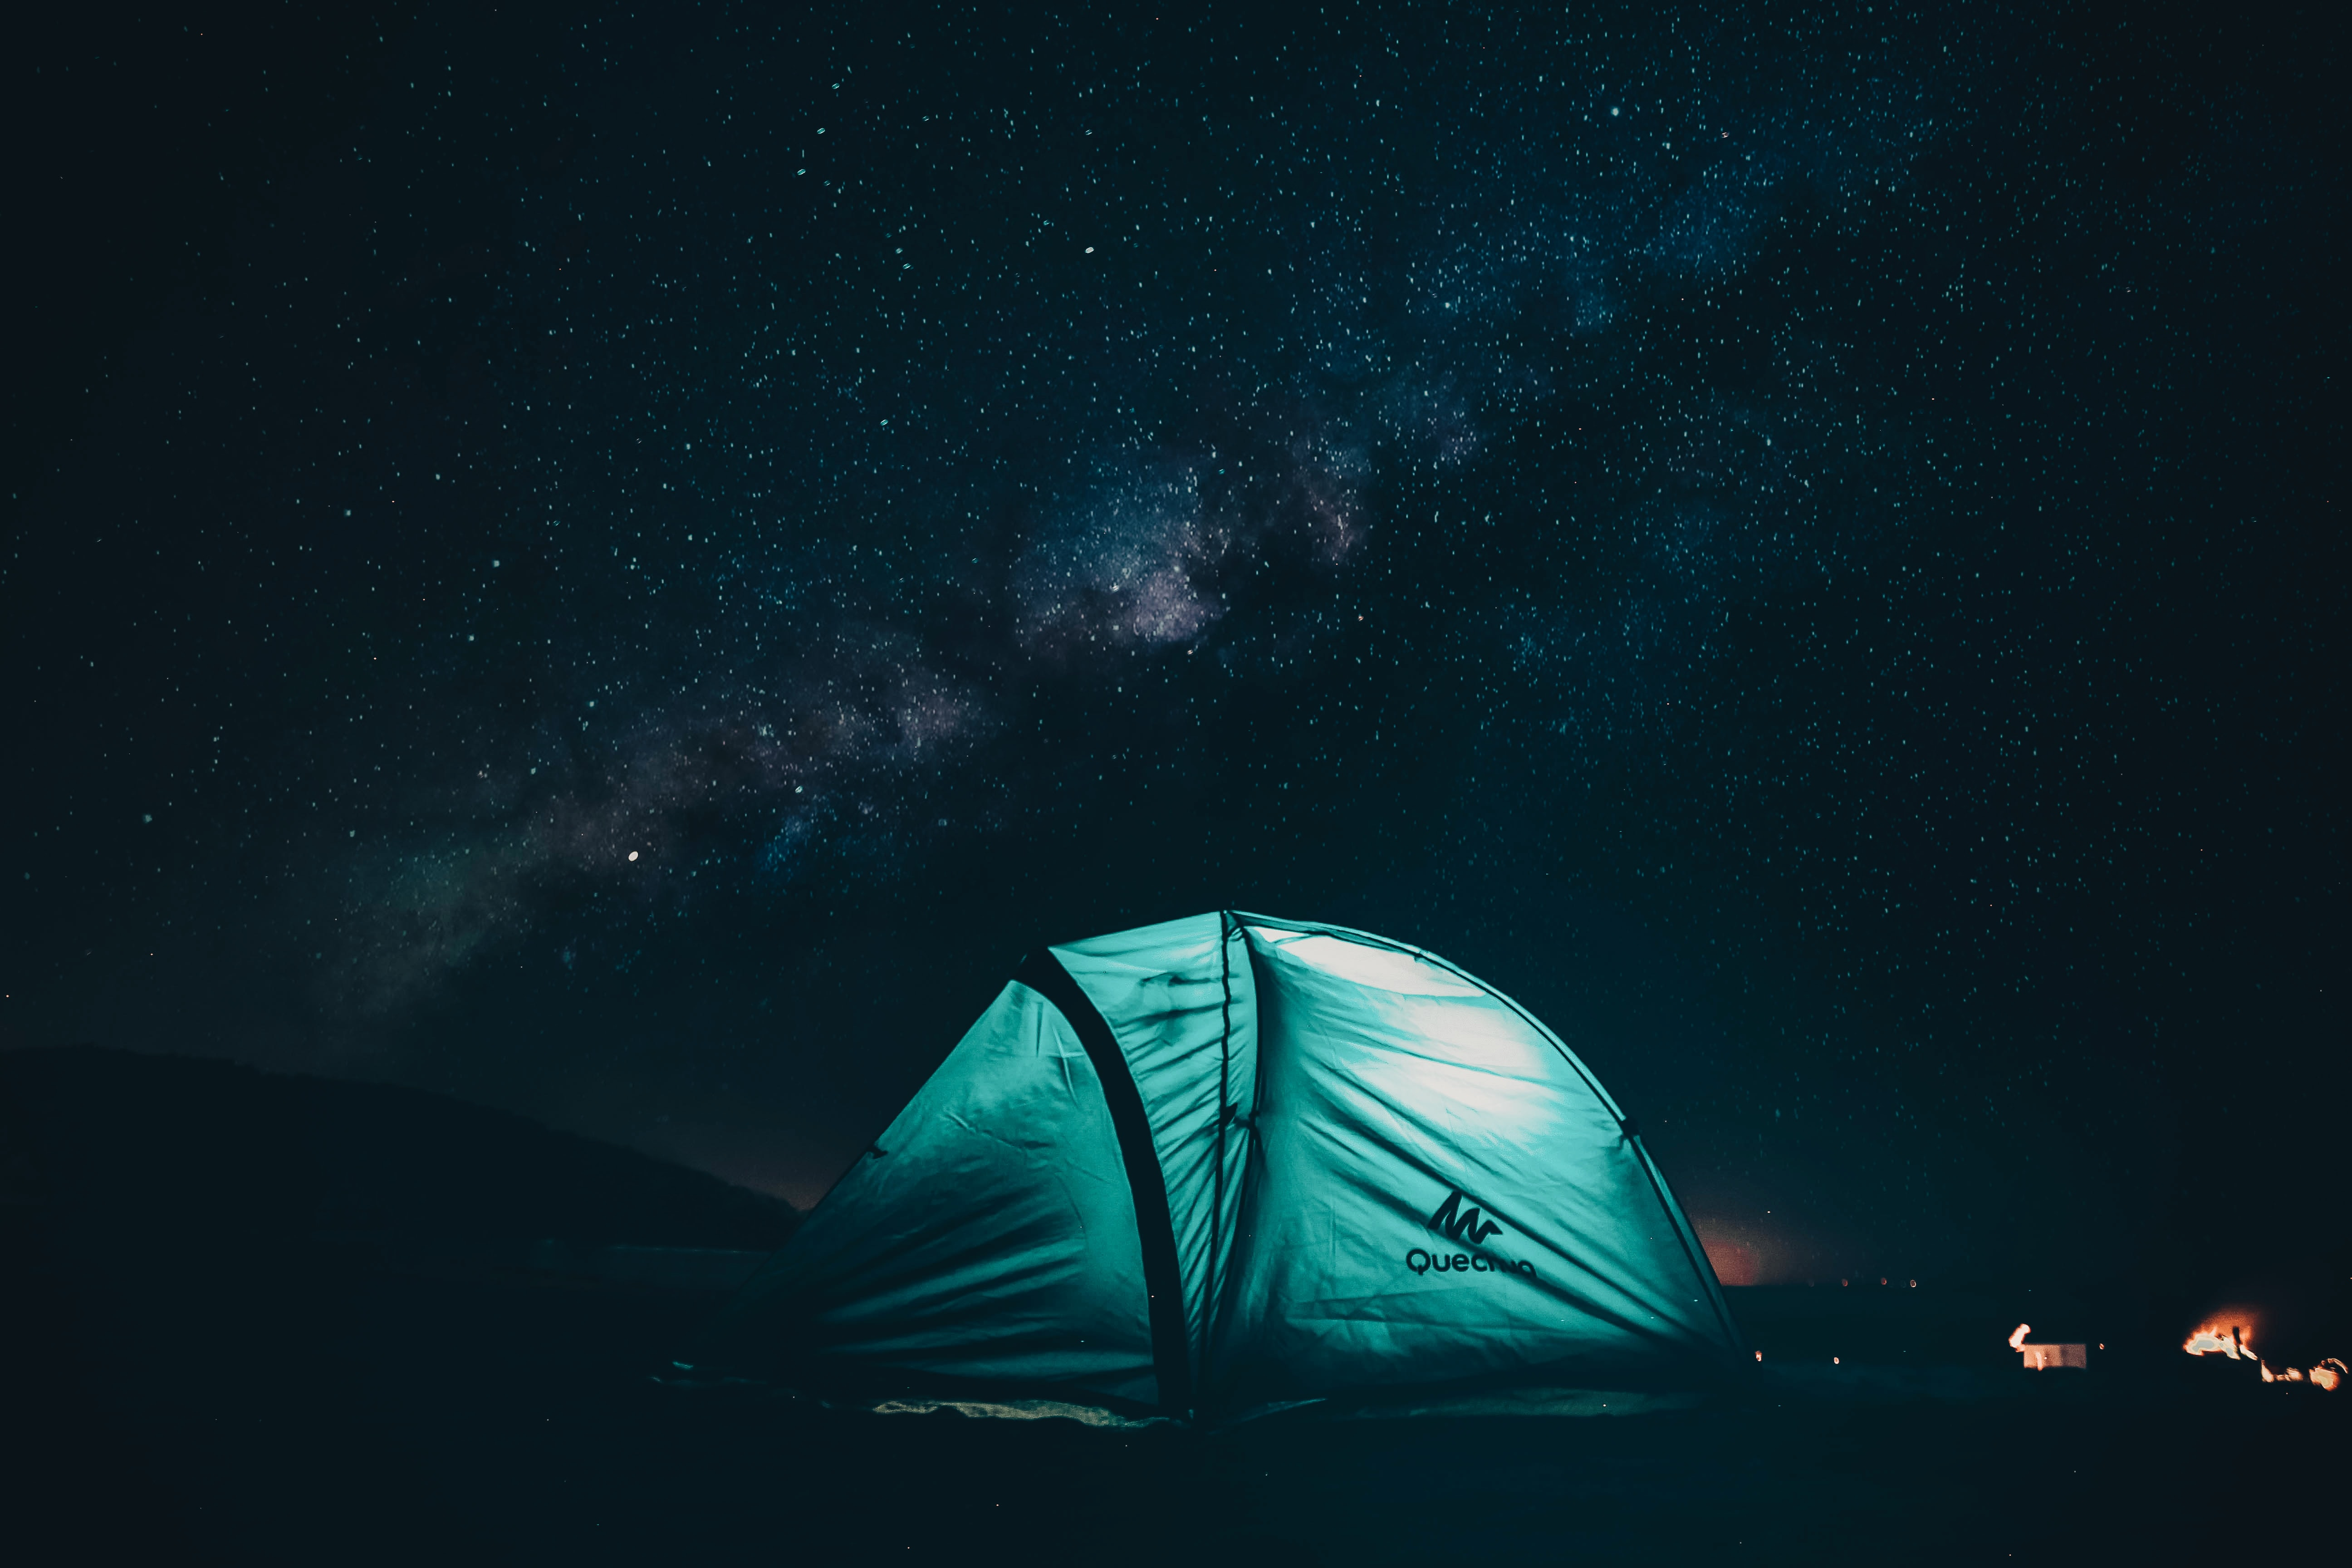 green and black tent with light inside under starry sky during nighttime